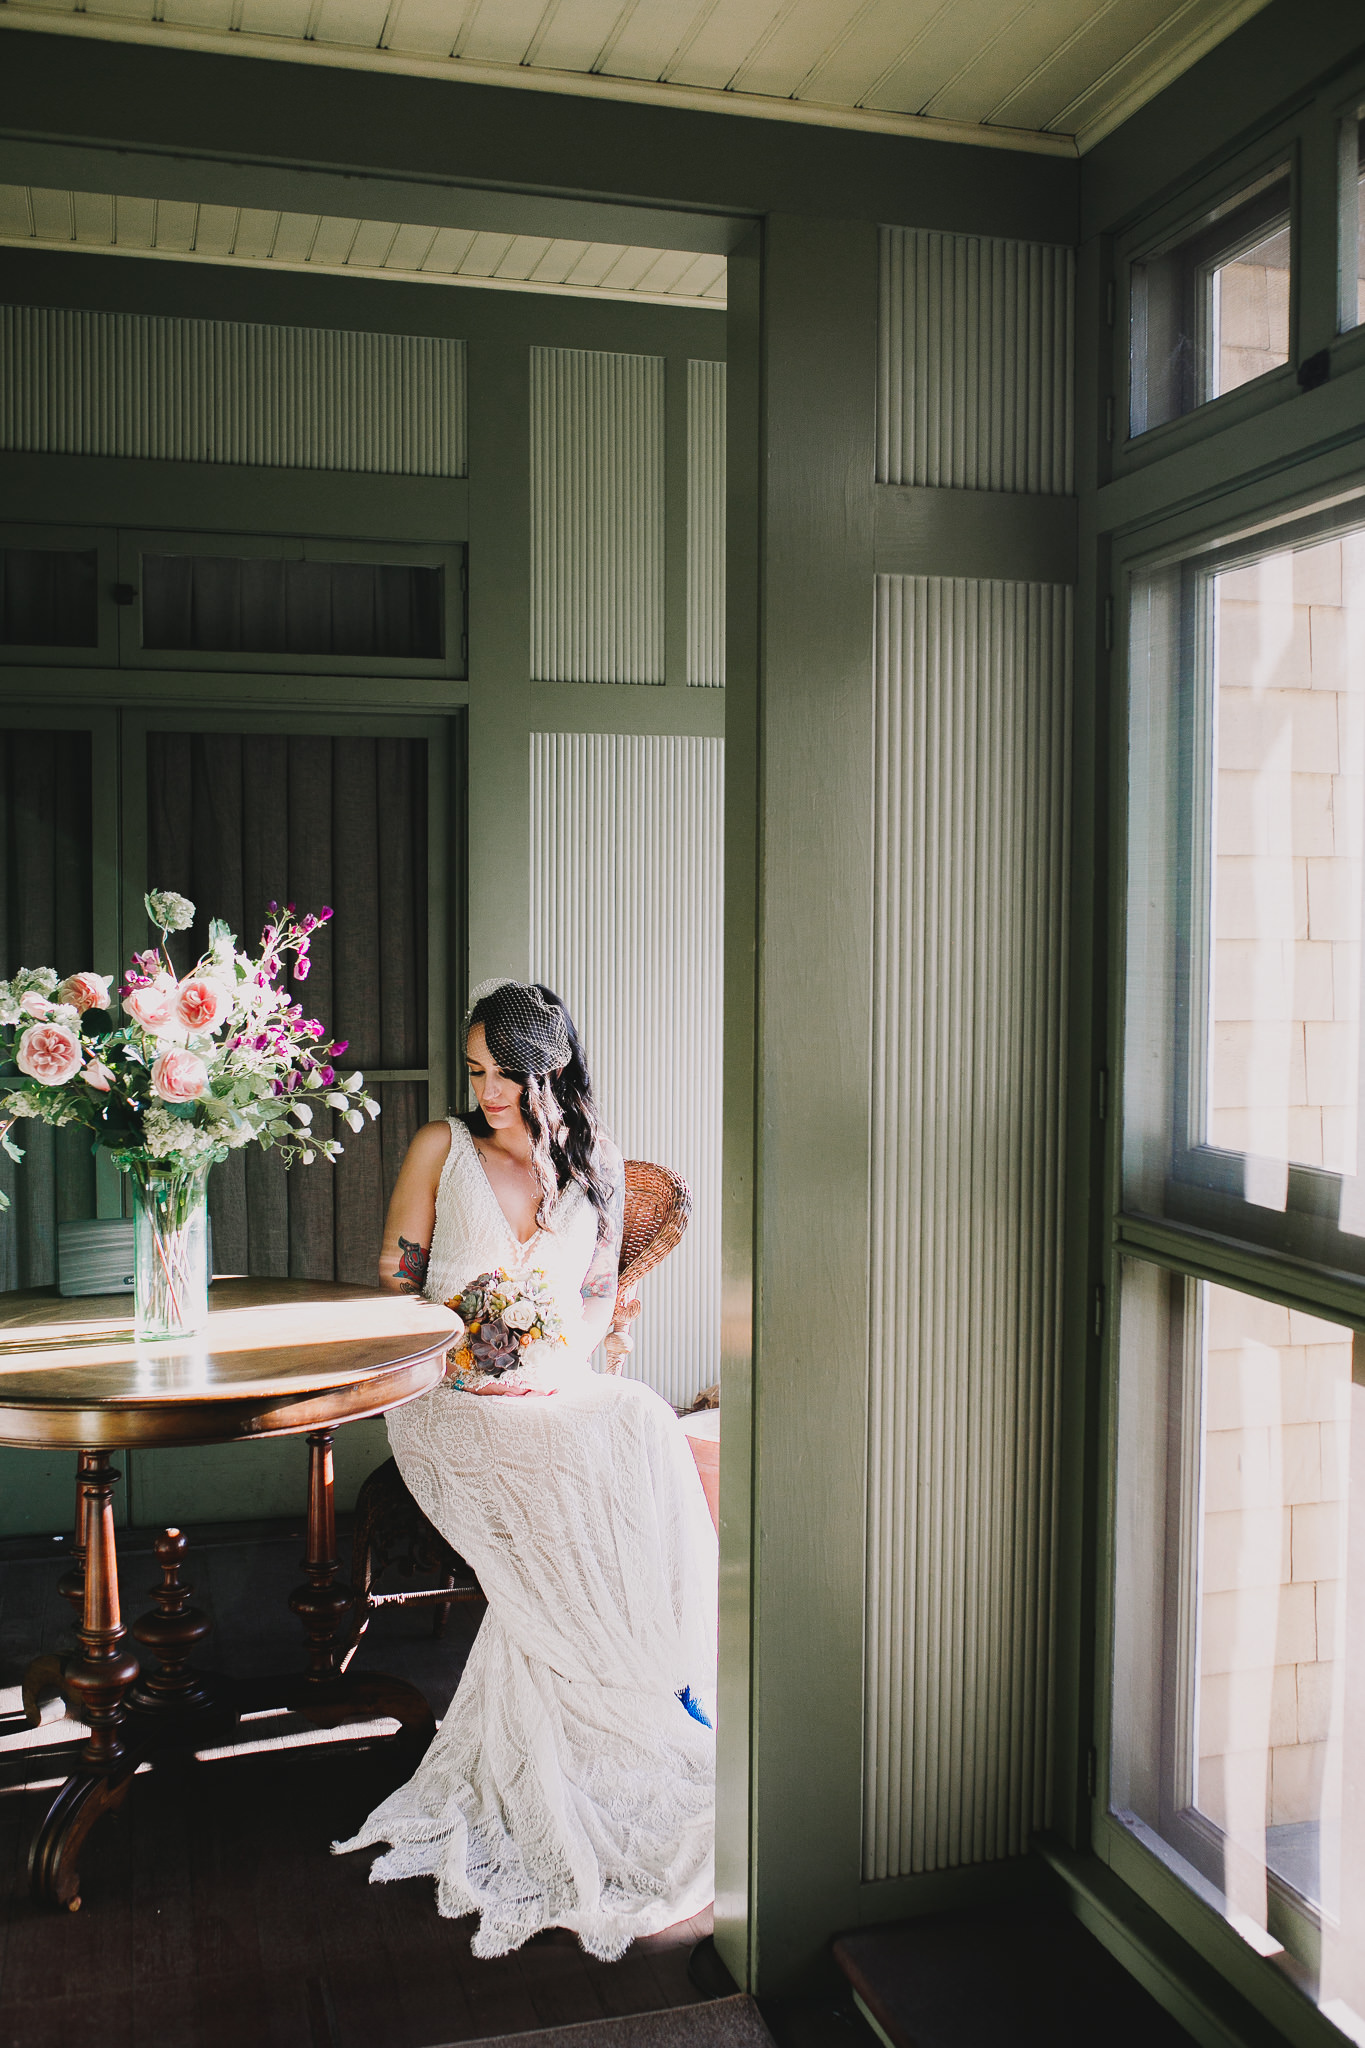 Archer Inspired Photography Sara and Aaron Winchester Mystery House NorCal San Jose California Wedding Photographer-269.jpg